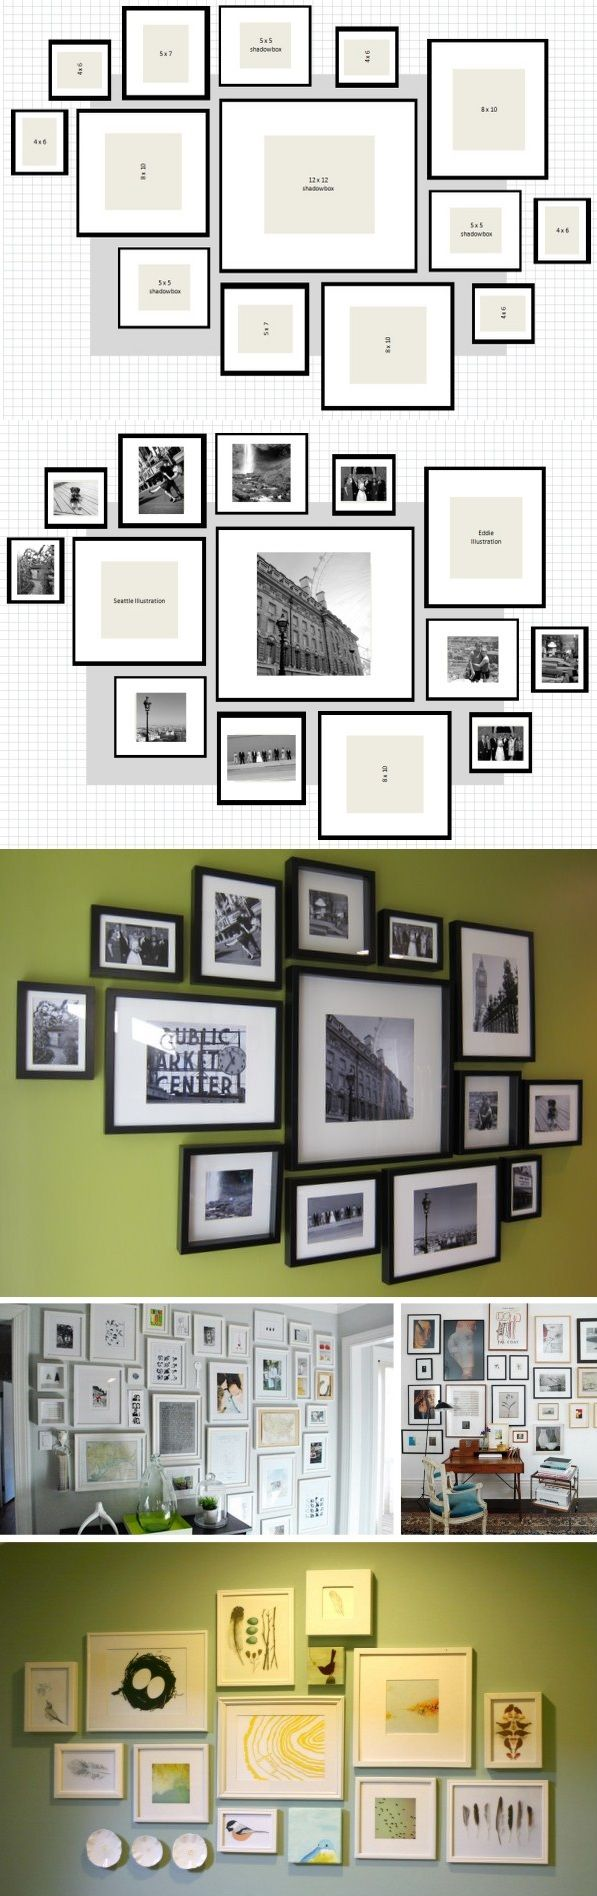 17 best ideas about wall frame layout on pinterest wall frame arrangements gallery wall frames and photo wall displays